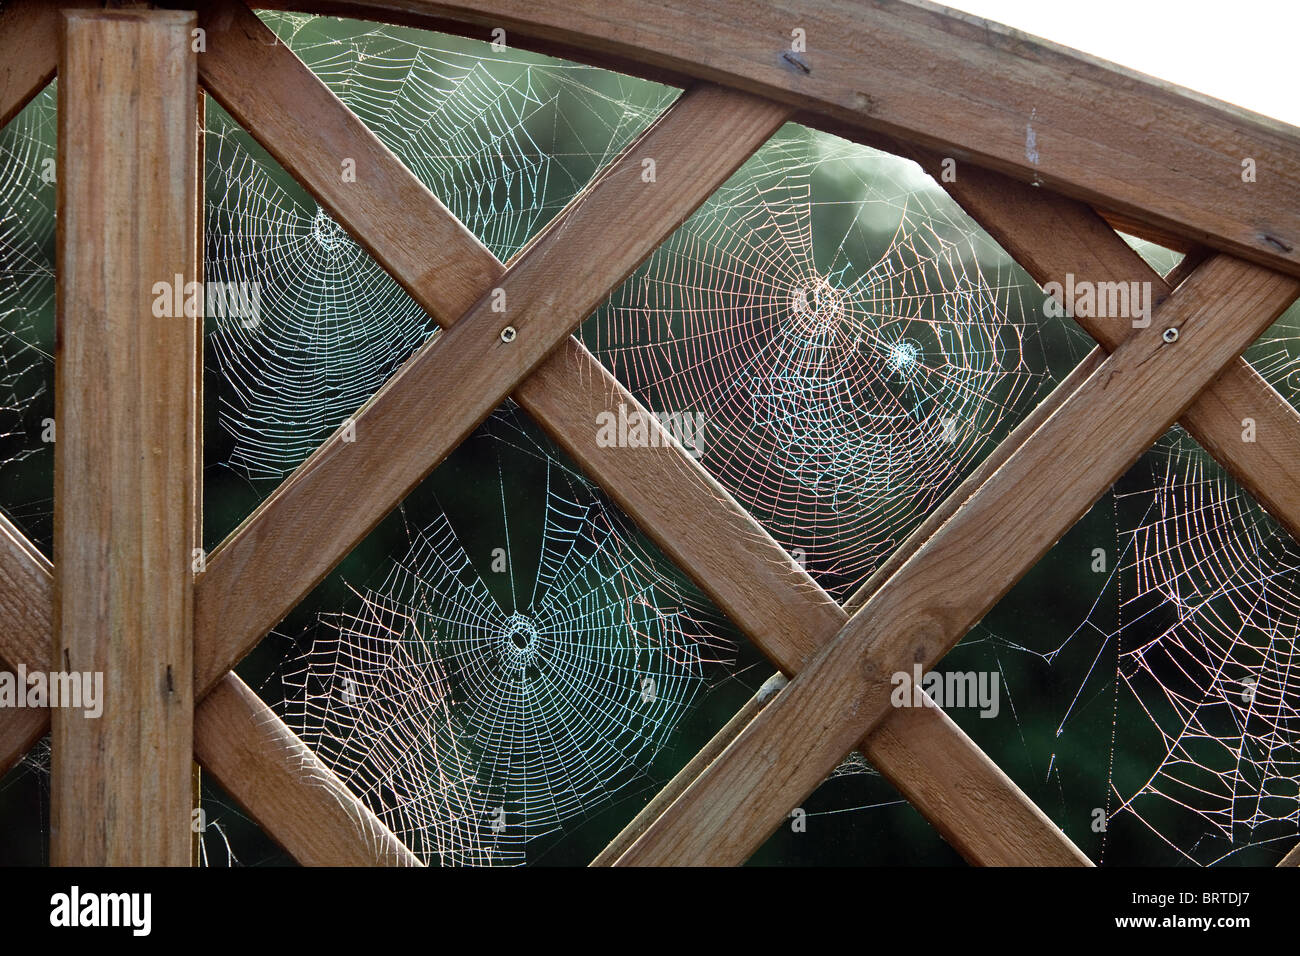 Siders cobwebs in the framework of a wooden garden fence. - Stock Image